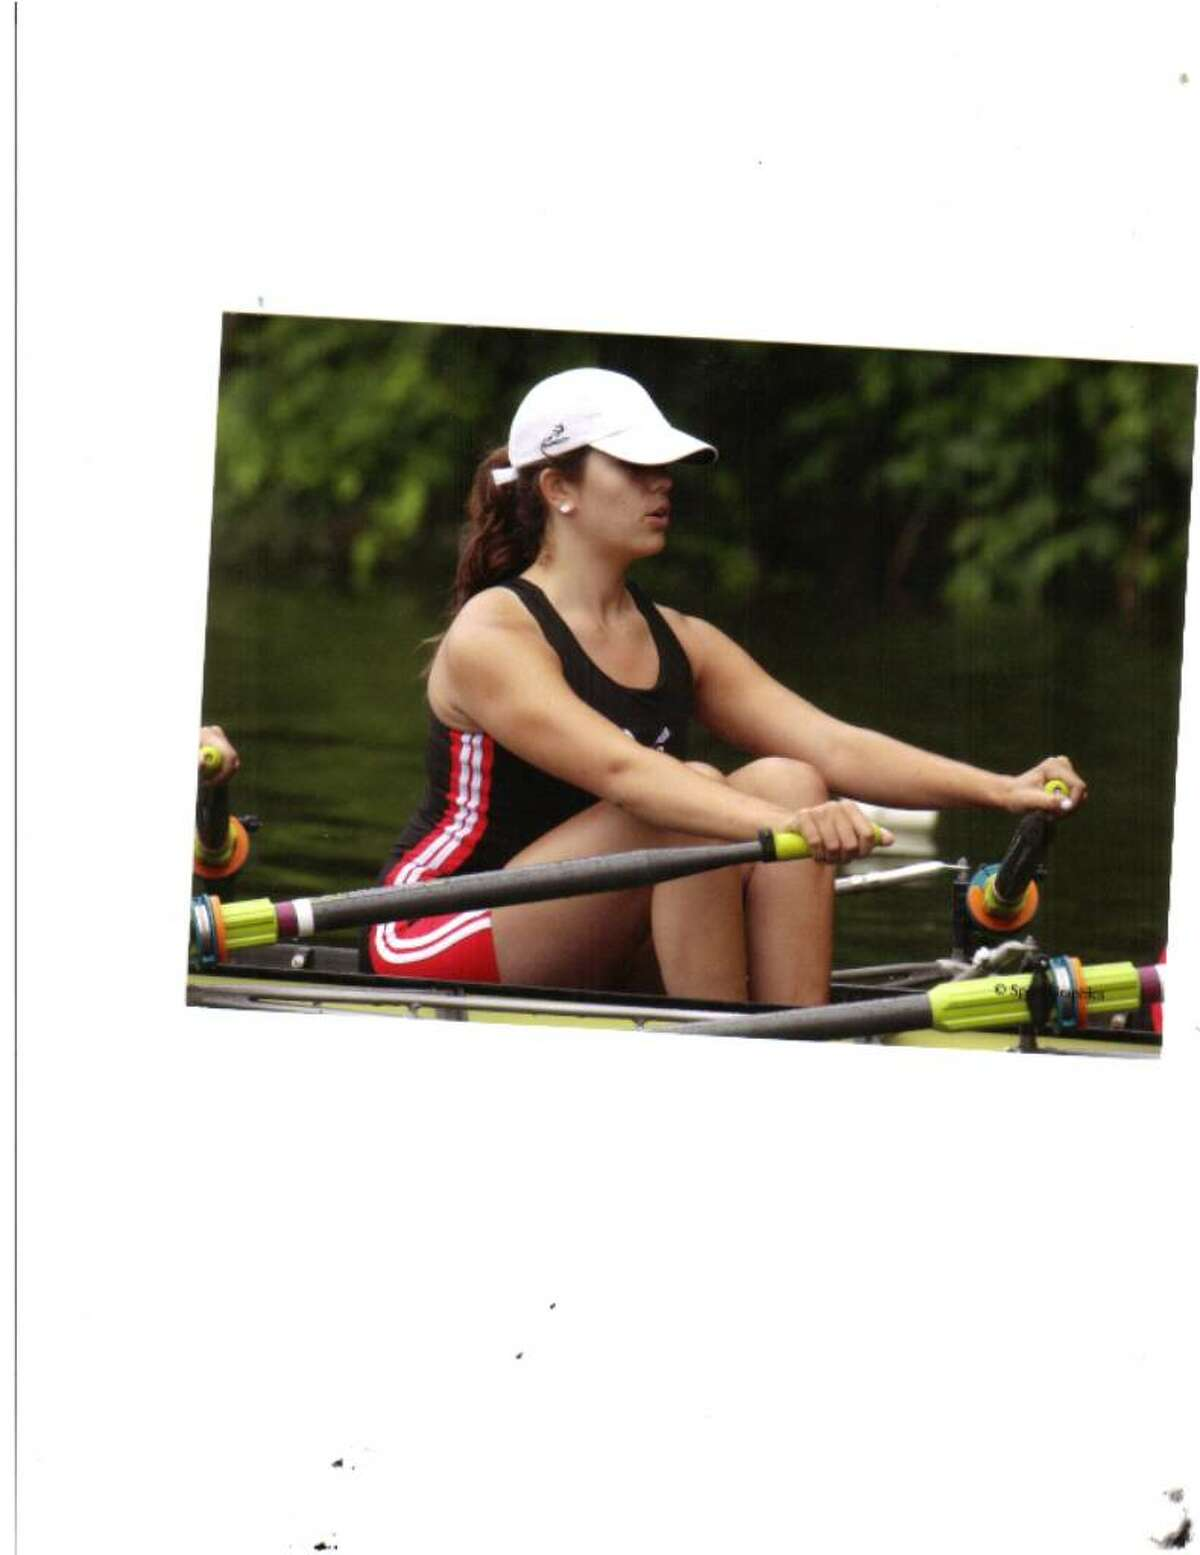 Rachel Upton graduated from Staples in June and will be rowing for Division I University of California at Berkeley.